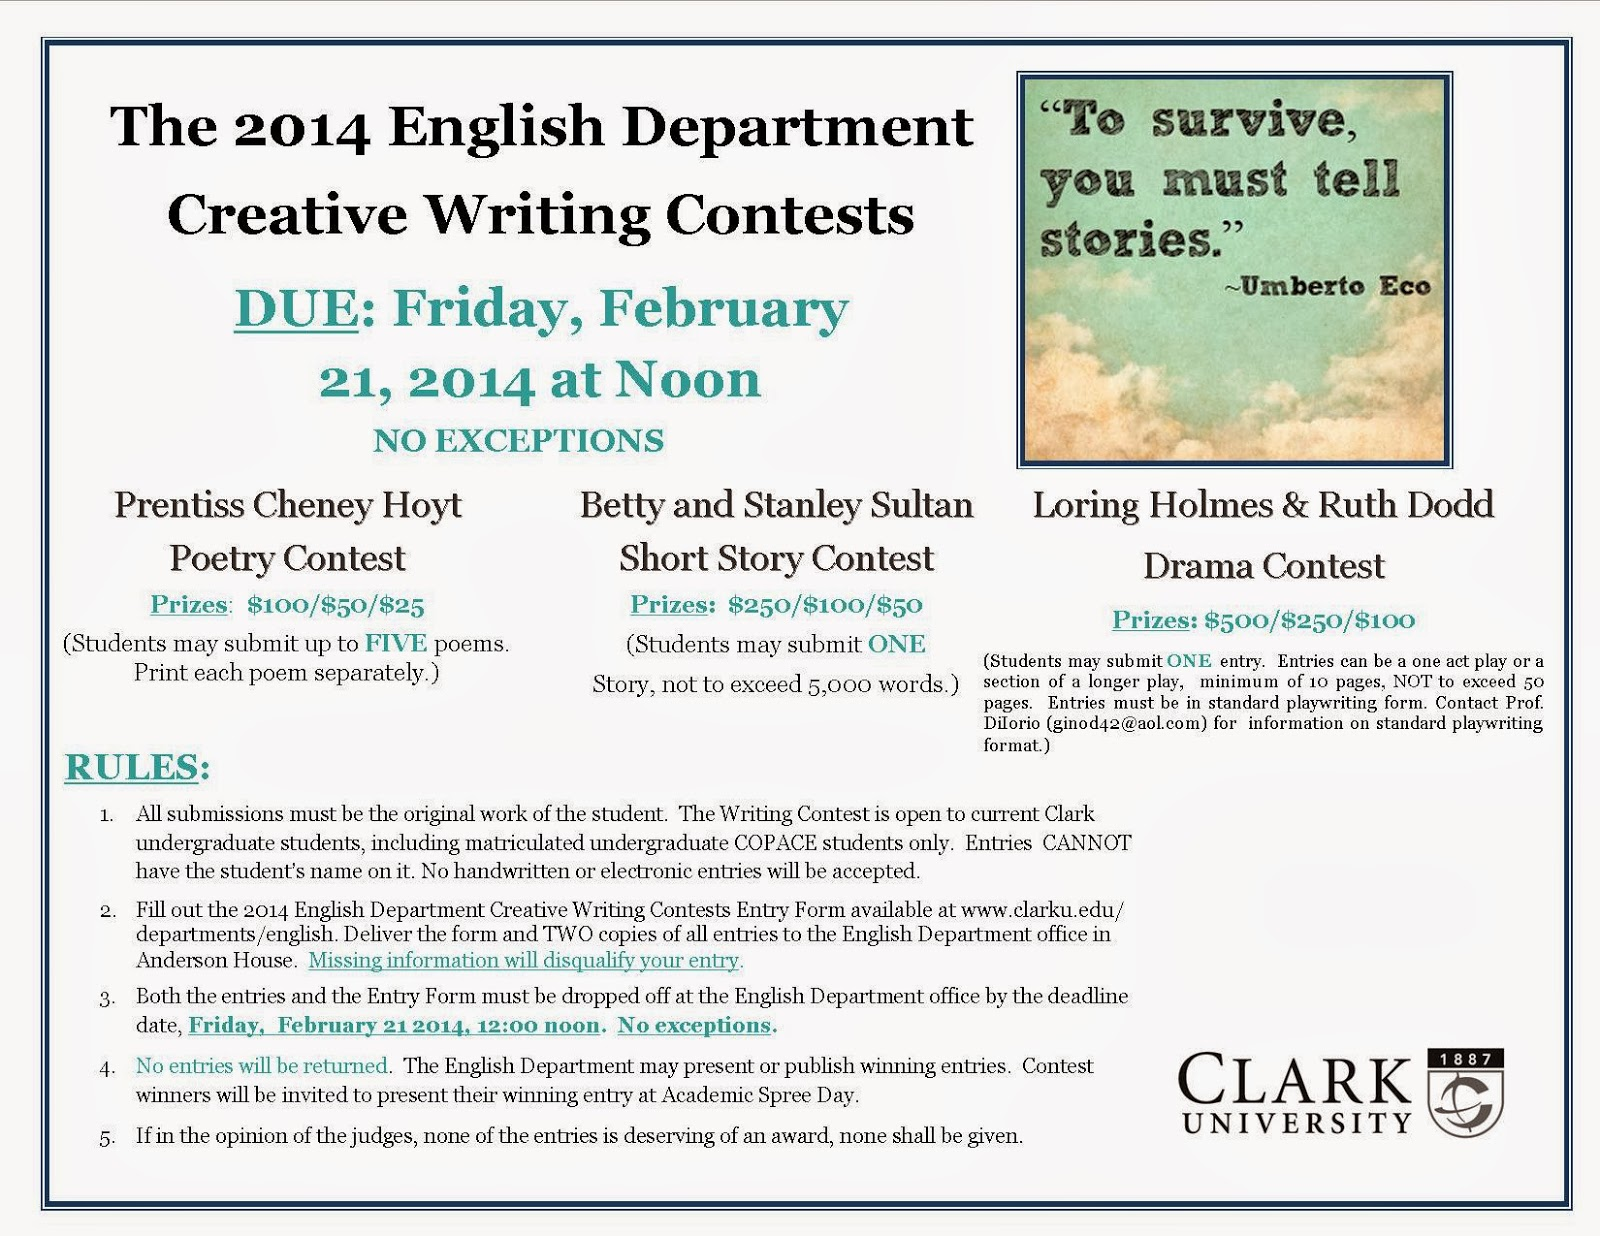 013 Essay Example 201420creative20writing20contest20poster20final Impressive Submissions Buzzfeed Personal Ireland 2018 Full